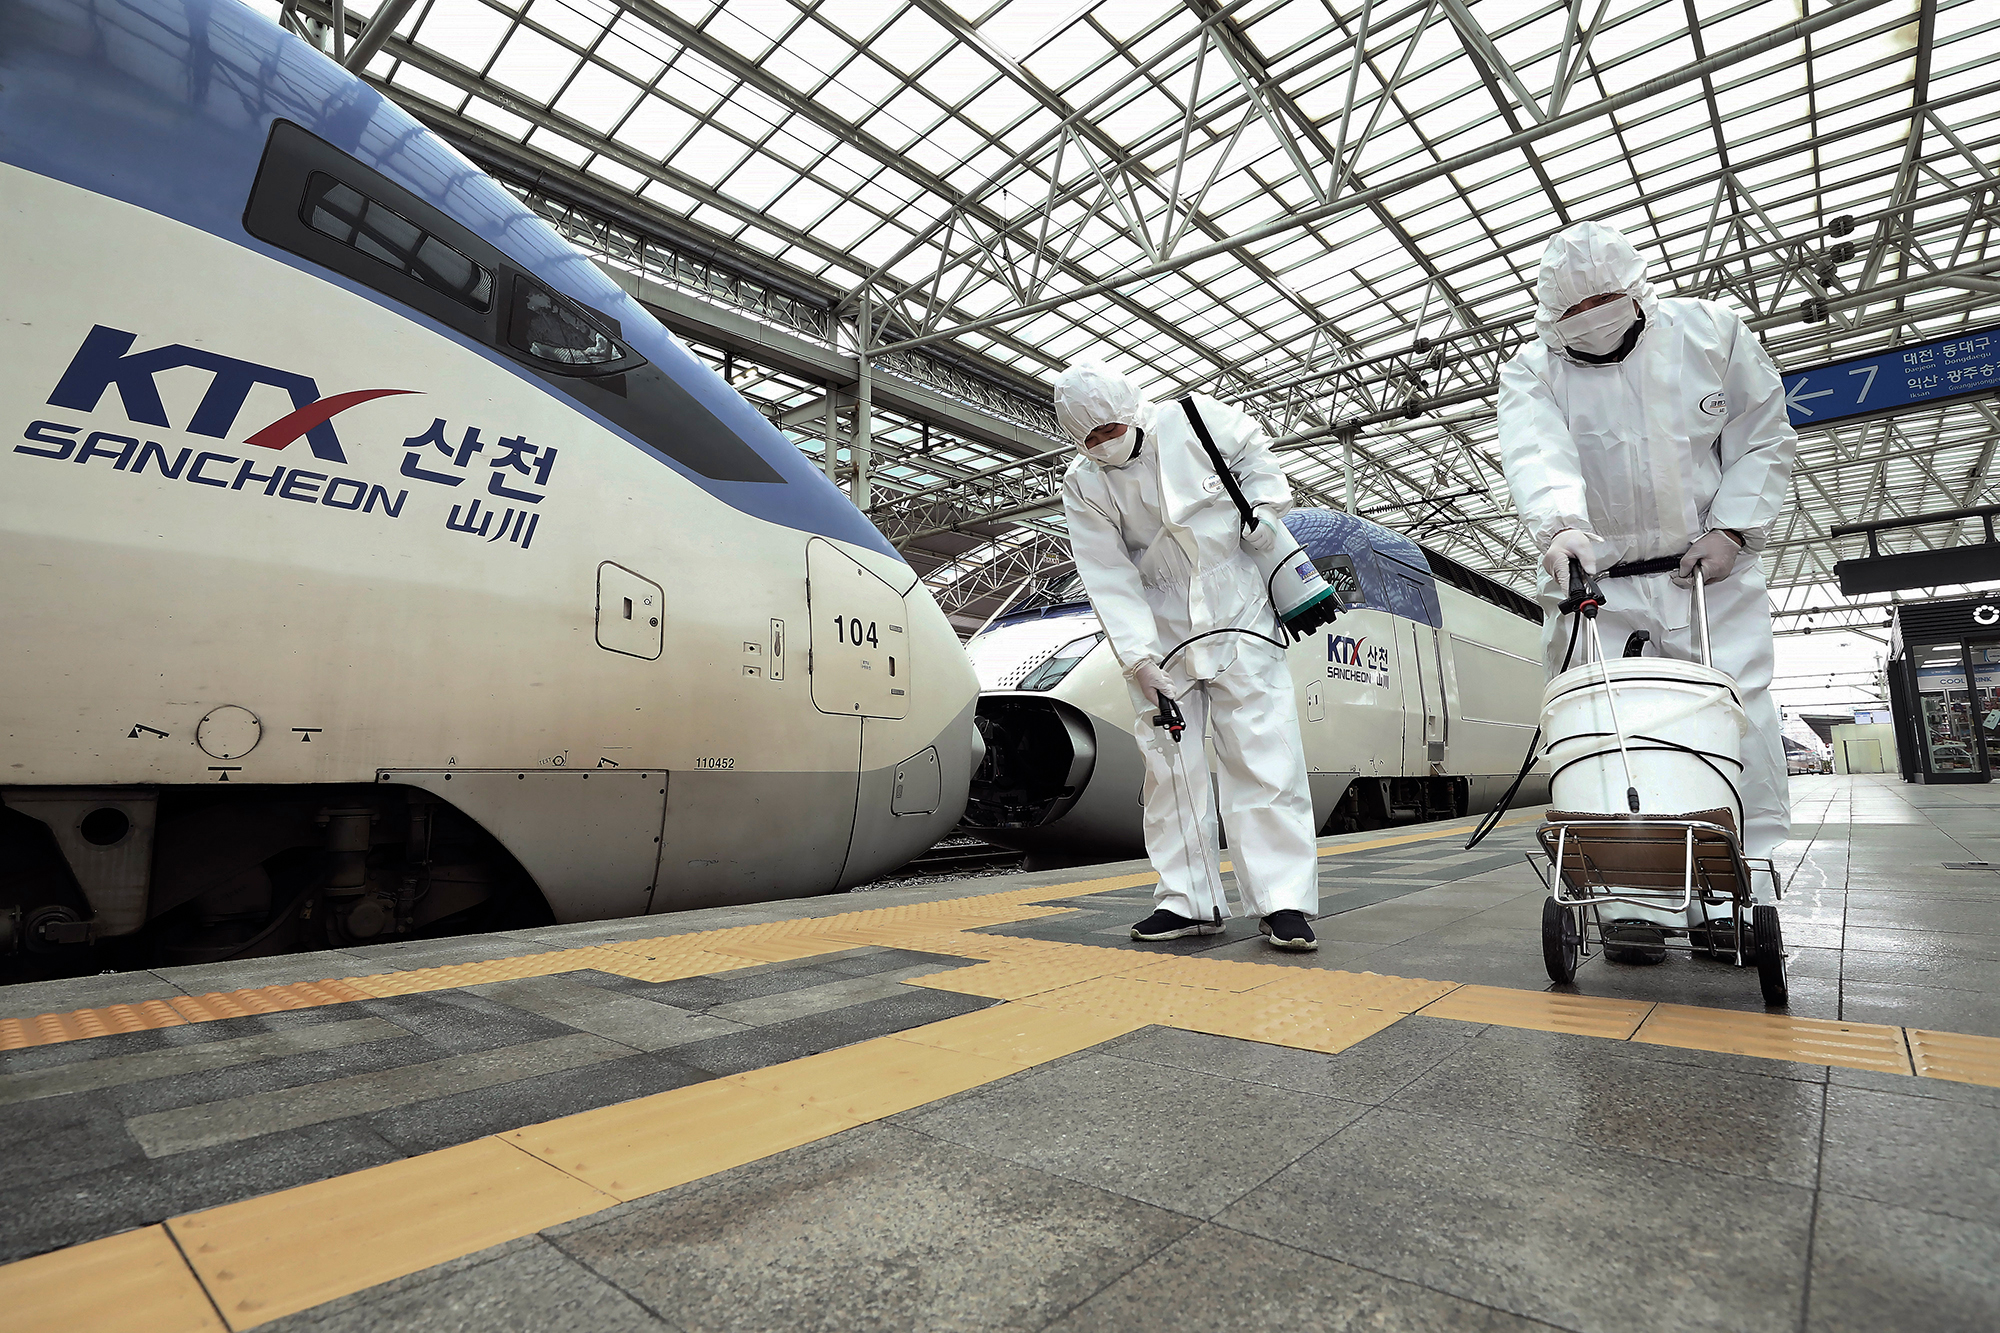 Workers wearing protective gear spray disinfectant as a precaution against the new coronavirus at Seoul Railway Station in Seoul, South Korea, Tuesday, February 25.